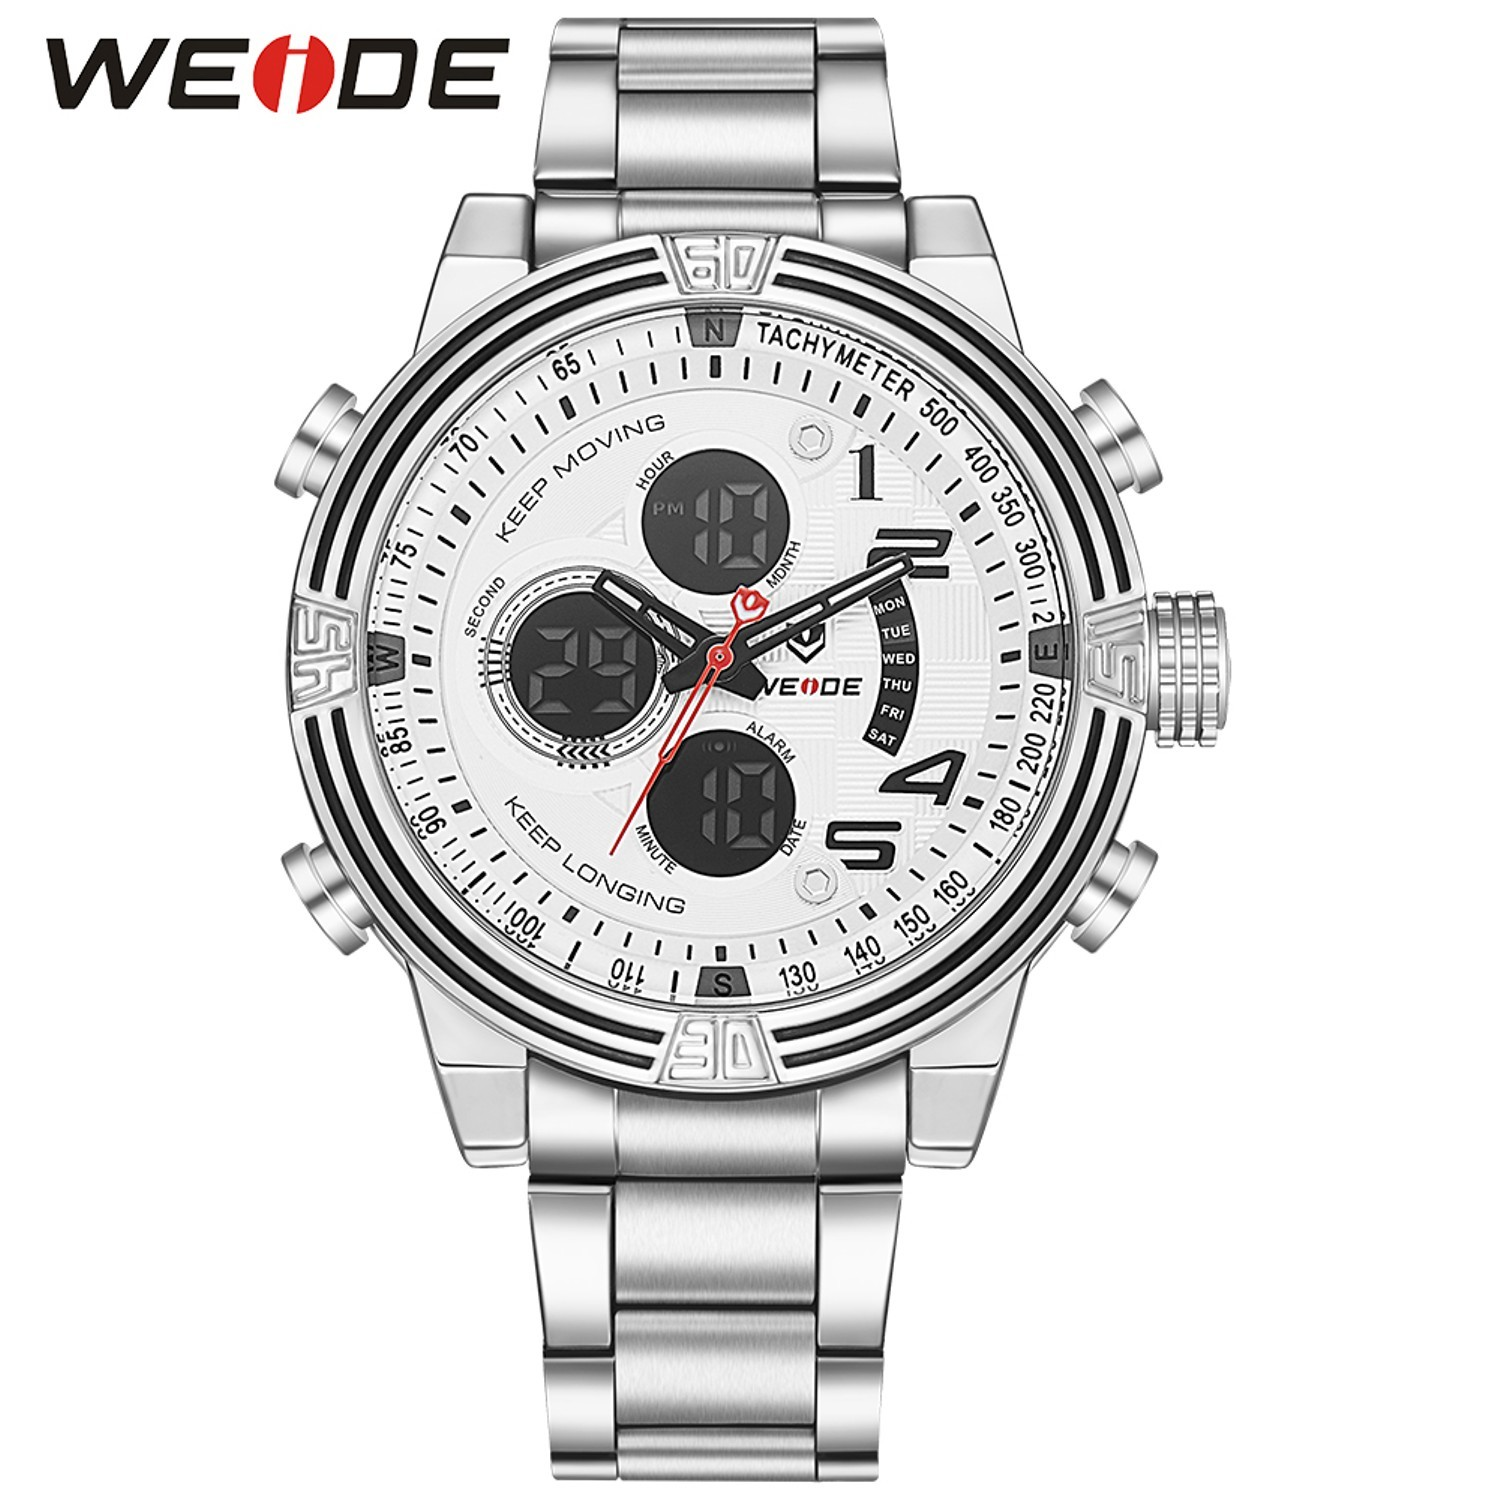 WEIDE-White-LCD-Alarm-Stopwatch-Back-Light-Date-Watch-Men-Stainless-Steel-Band-Analog-Digital-Quartz_1500x1500_STRETCH_588.jpg